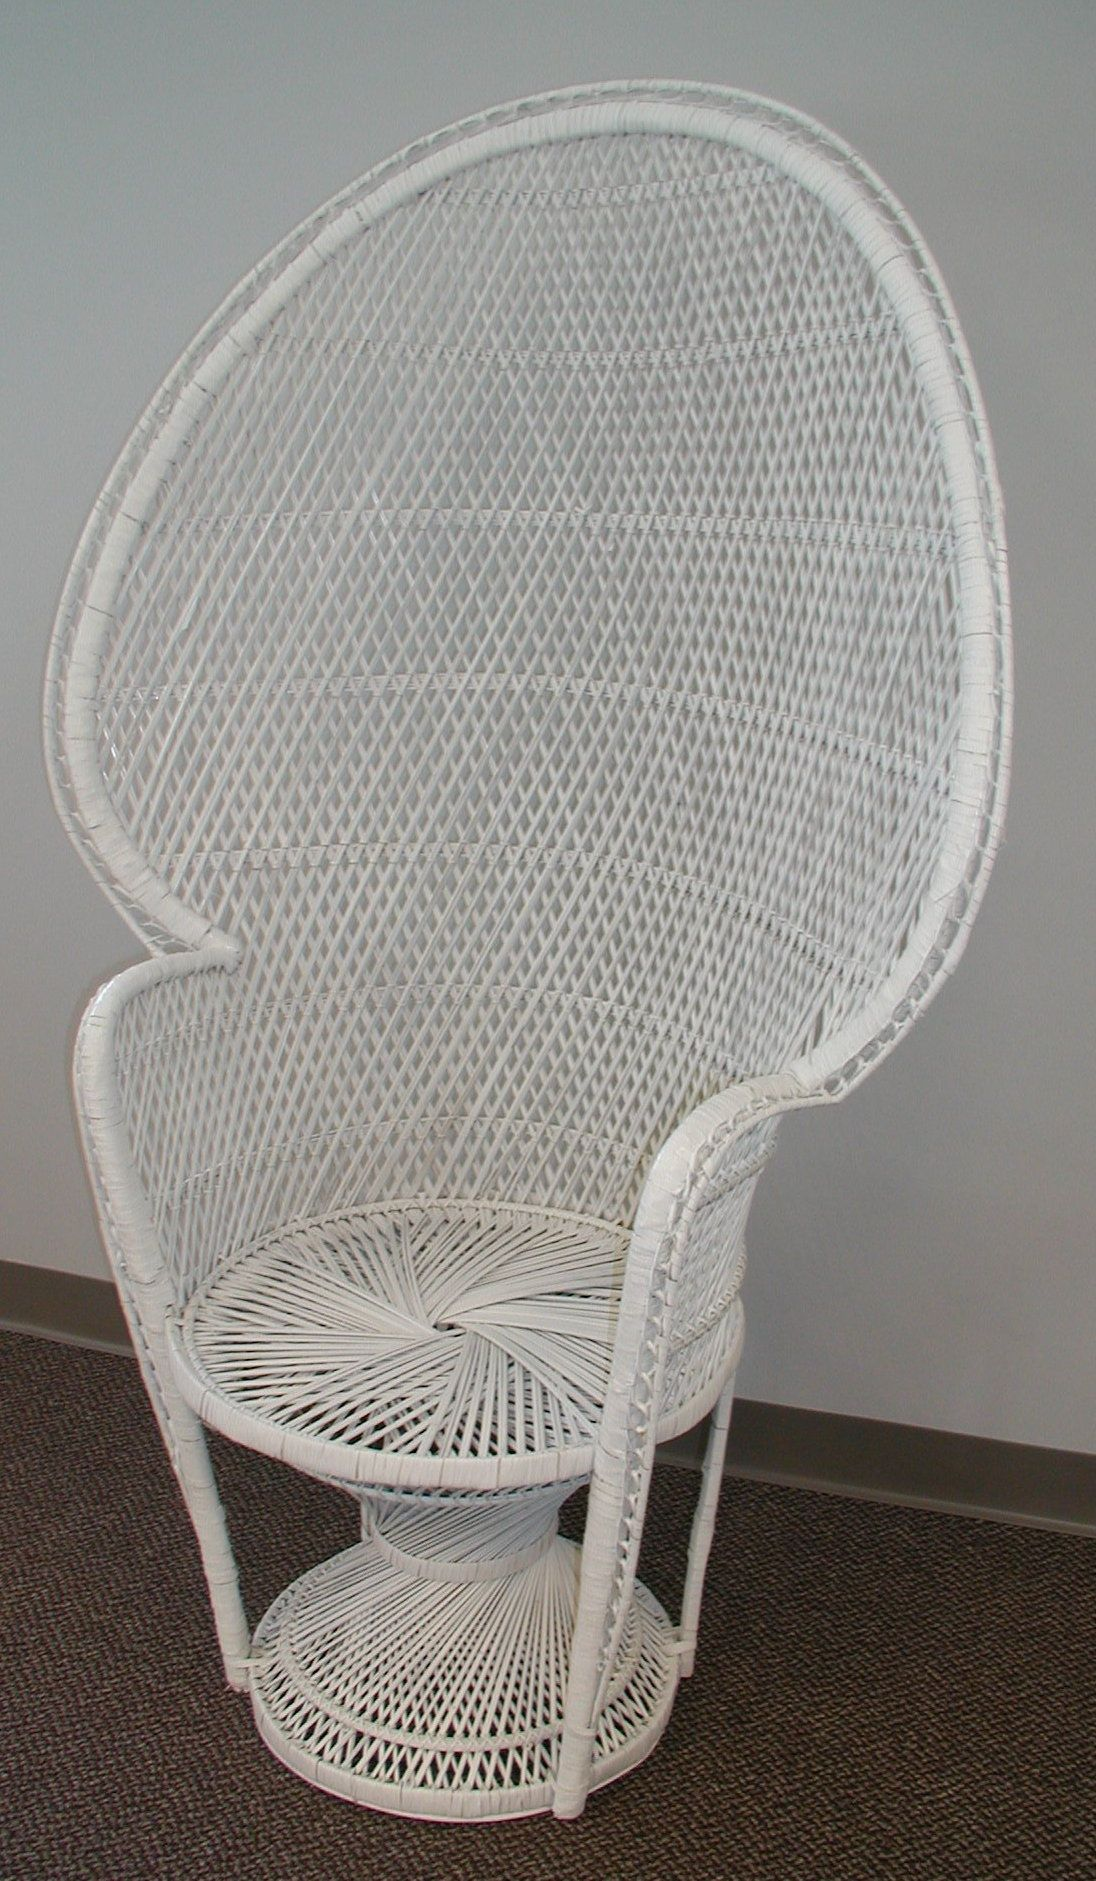 baby bamboo chair target lawn chairs shown is our wicker high back it would be a perfect